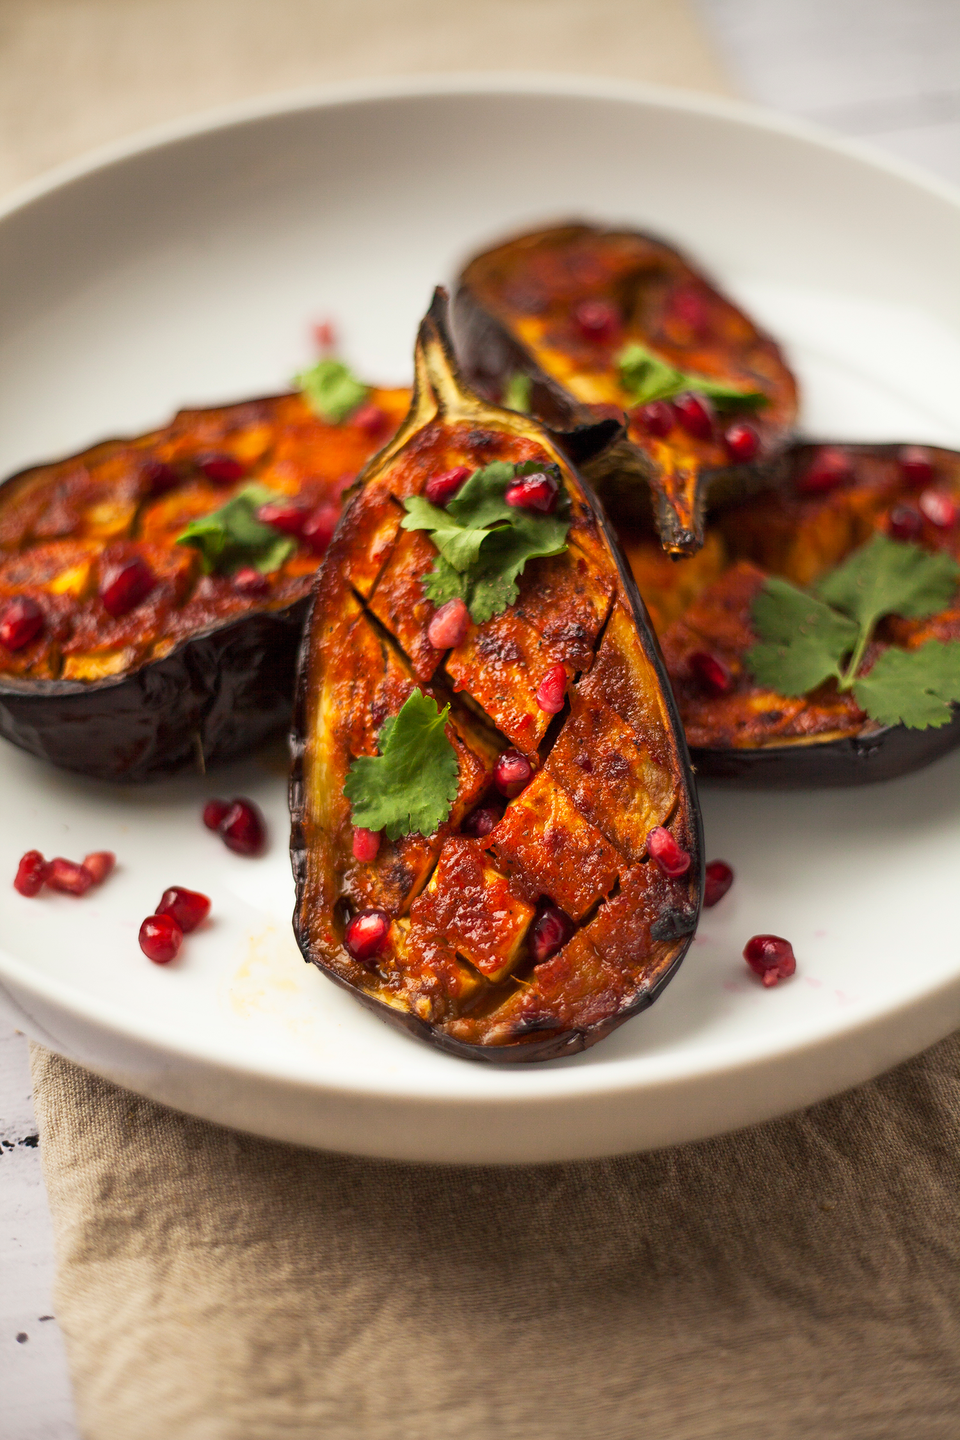 """<p>This vegan-friendly centrepiece is super simple but looks oh-so impressive served up on a platter.</p><p><strong>Recipe: <a href=""""https://www.goodhousekeeping.com/uk/food/recipes/a27482624/harissa-aubergine/"""" rel=""""nofollow noopener"""" target=""""_blank"""" data-ylk=""""slk:Harissa aubergine"""" class=""""link rapid-noclick-resp"""">Harissa aubergine</a></strong></p>"""